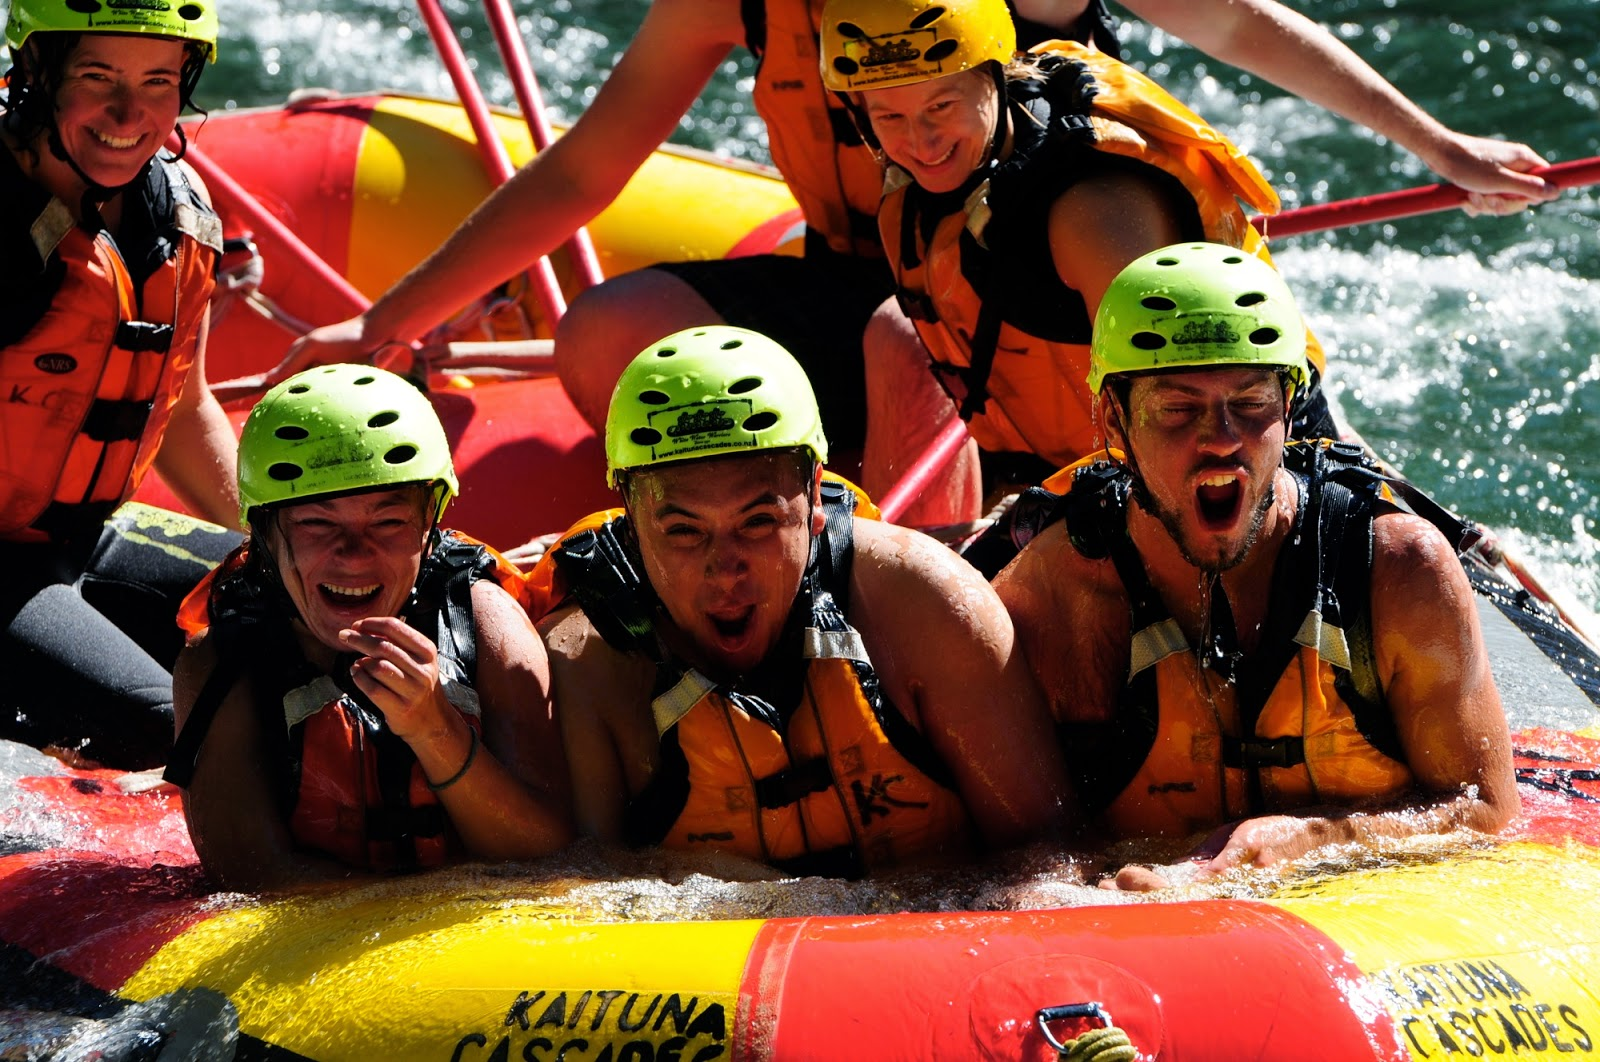 White Water Rafting fun - Rotorua, New Zealand